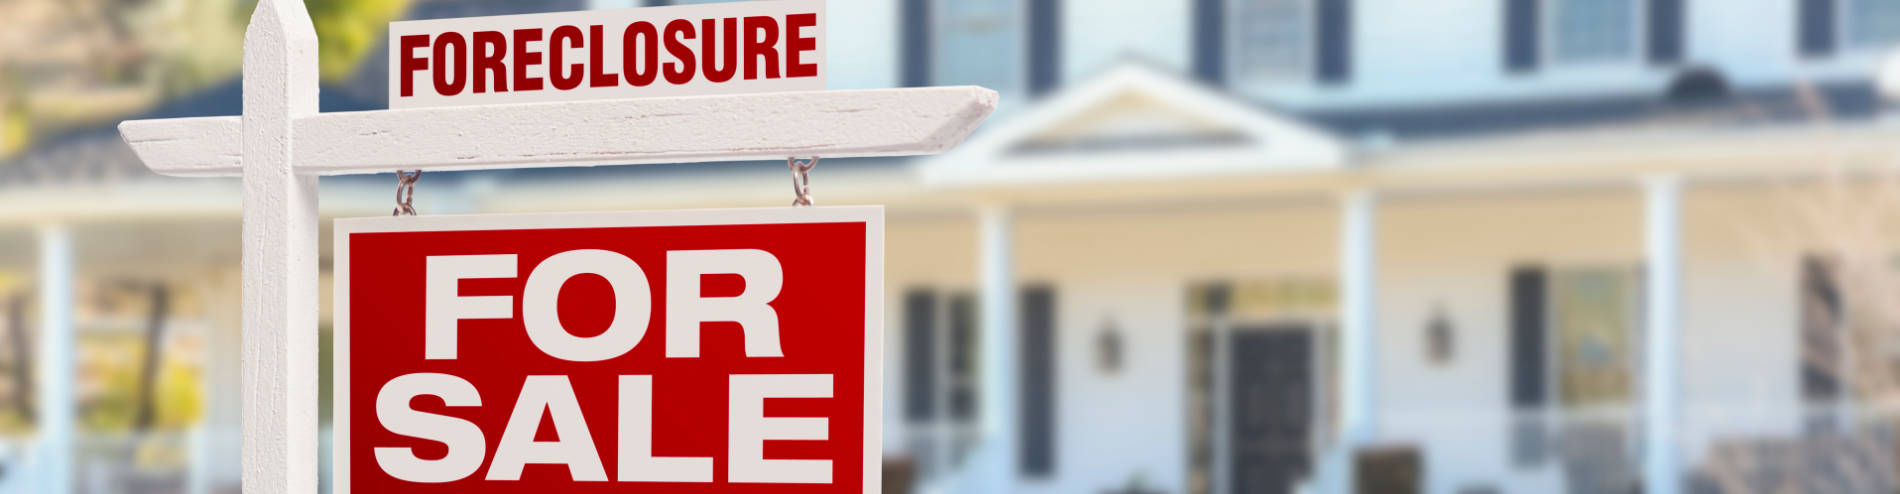 foreclosures in fort mcmurray - image of for sale sign